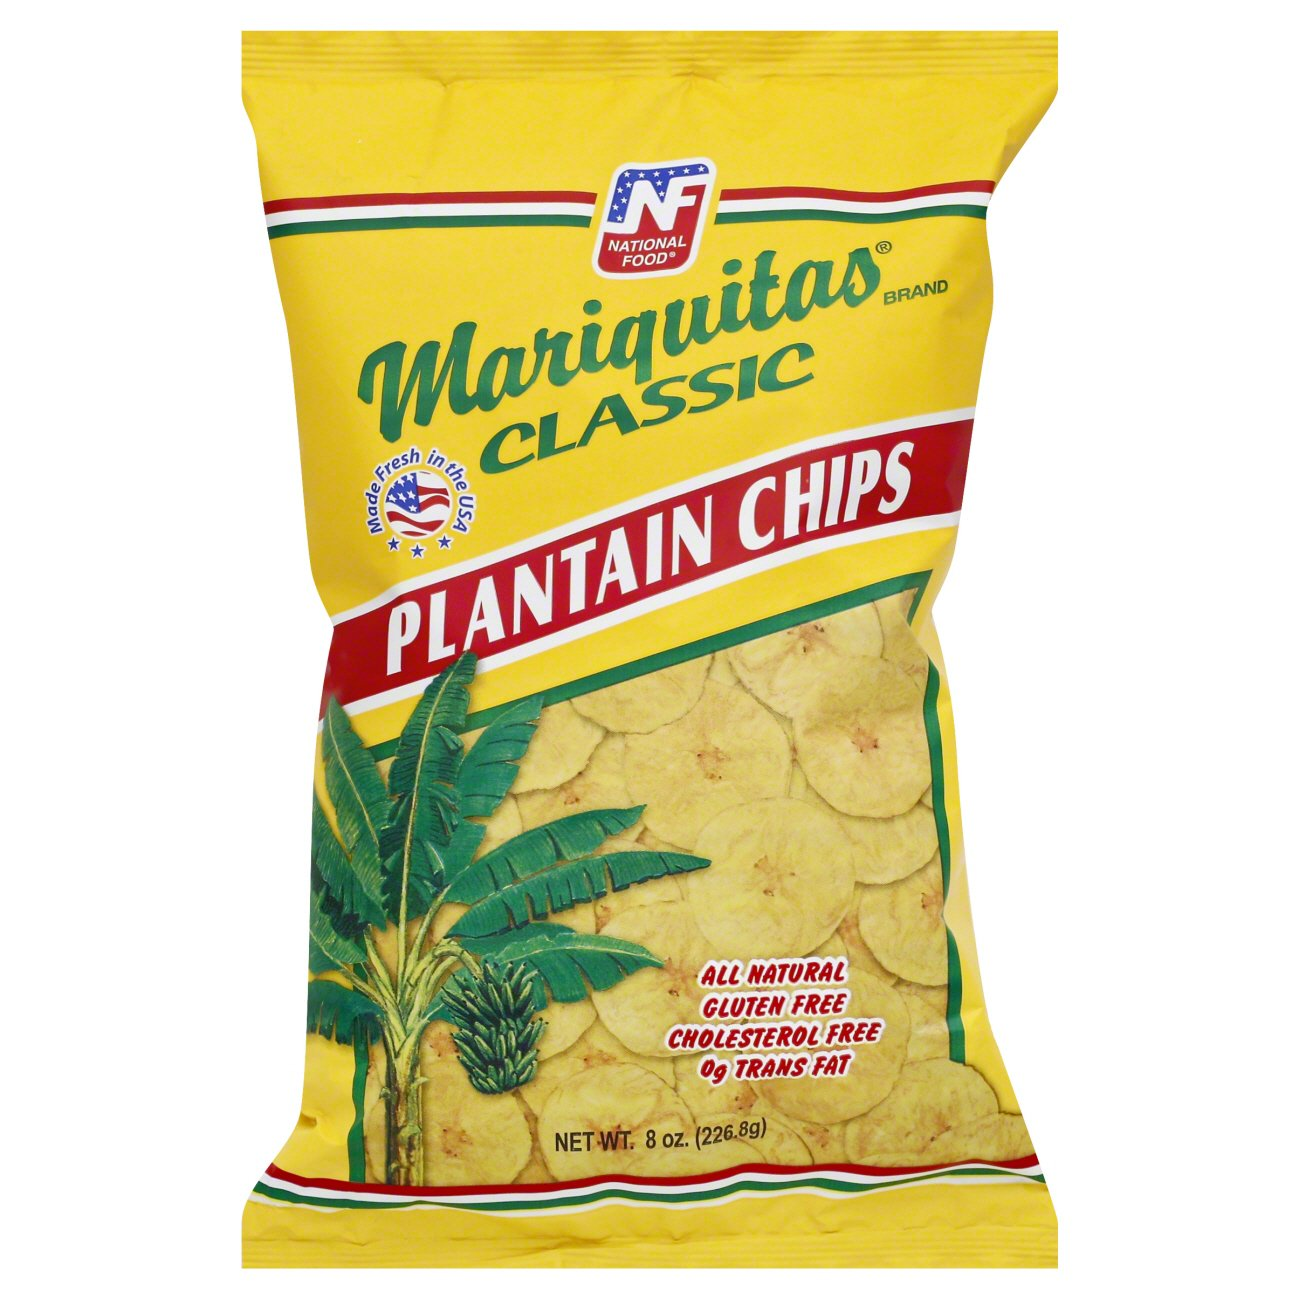 Plantain chips business is a business you can start with 50k or less and deliver to customers